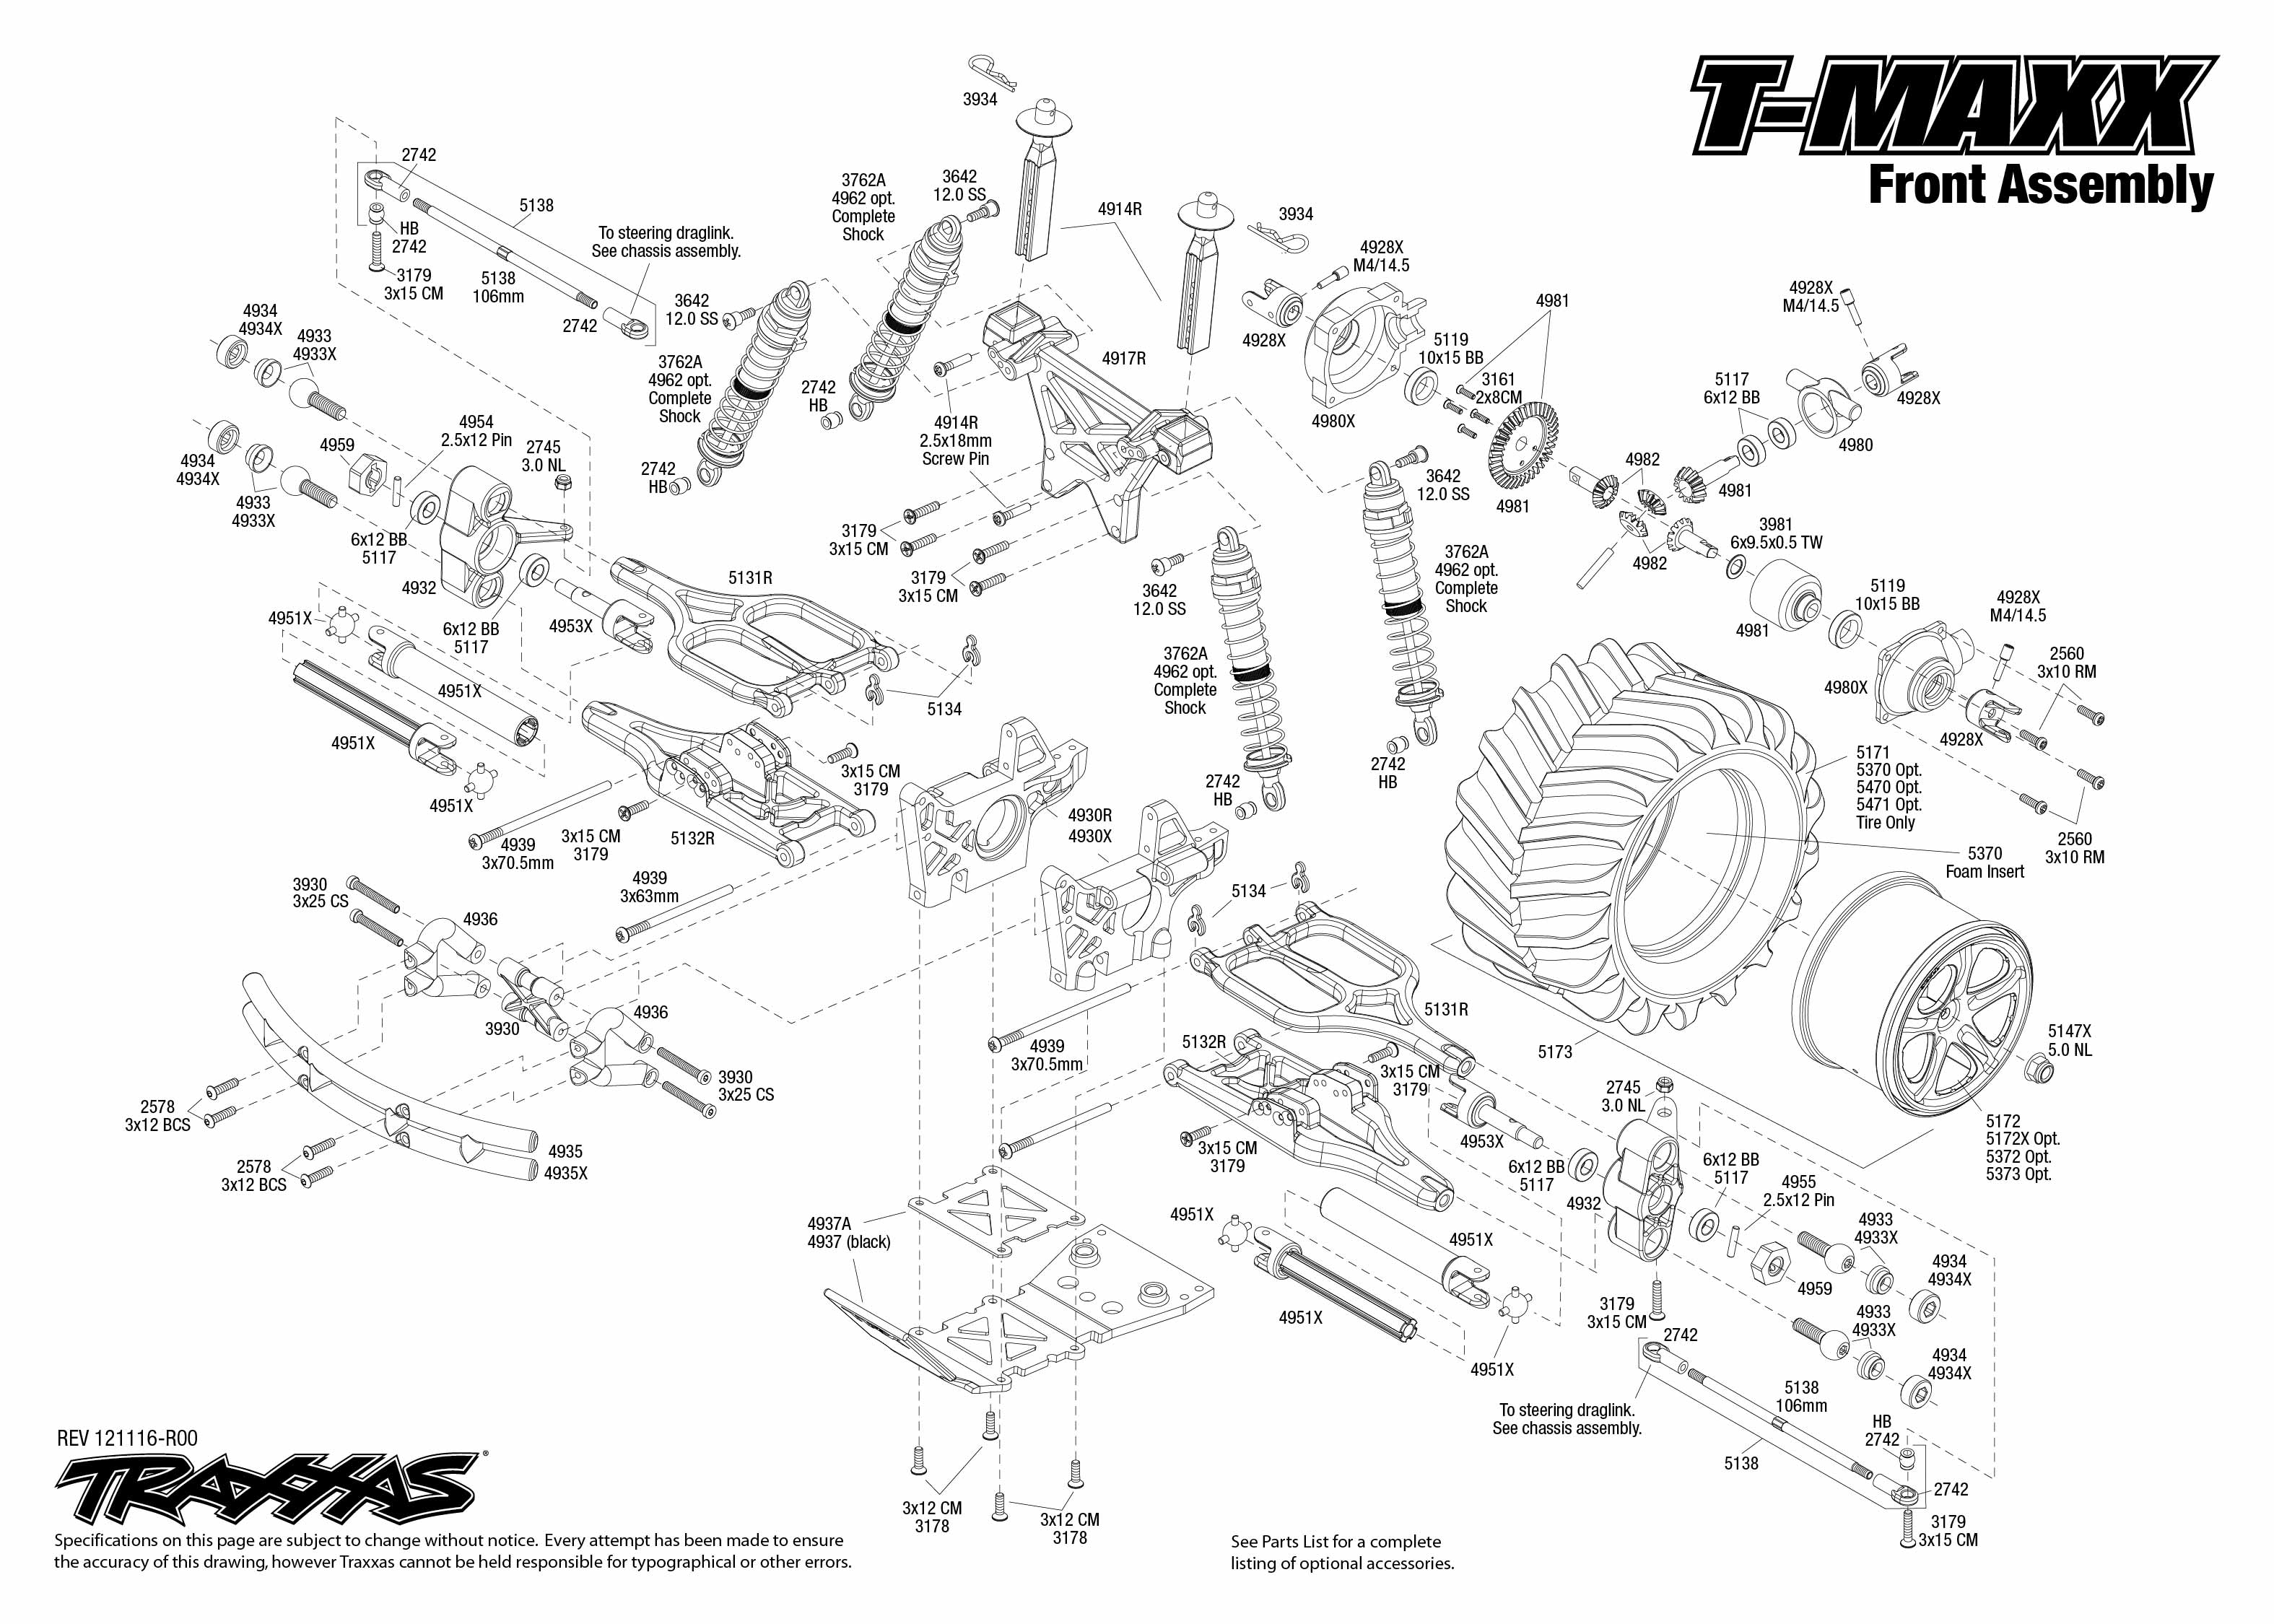 [DIAGRAM_5UK]  T-Maxx (49104) Front Assembly | Exploded View | Traxxas | Traxxas 2 5 Engine Diagram |  | Traxxas